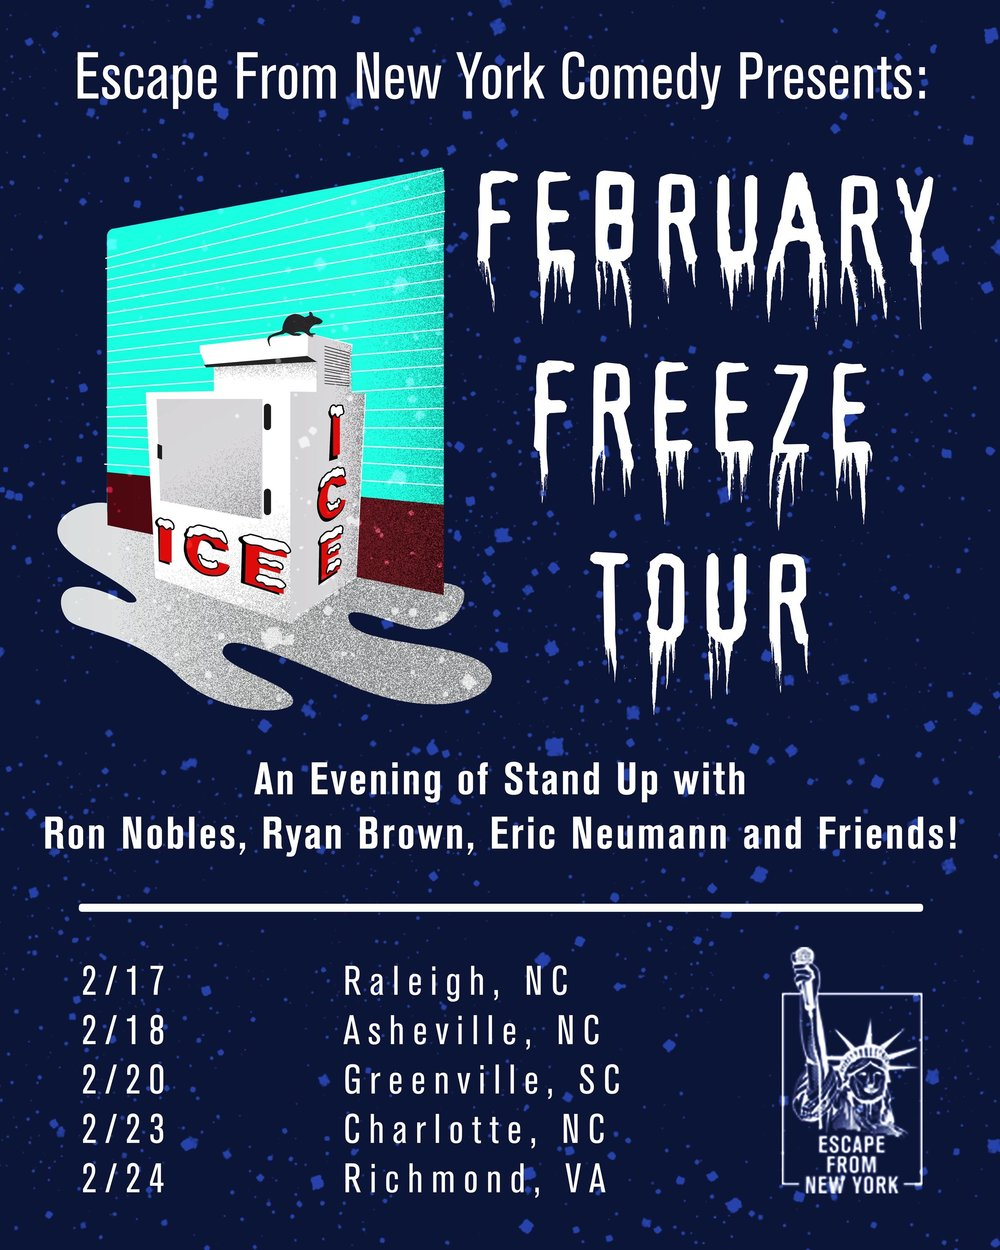 Feb Freeze Tour.jpg